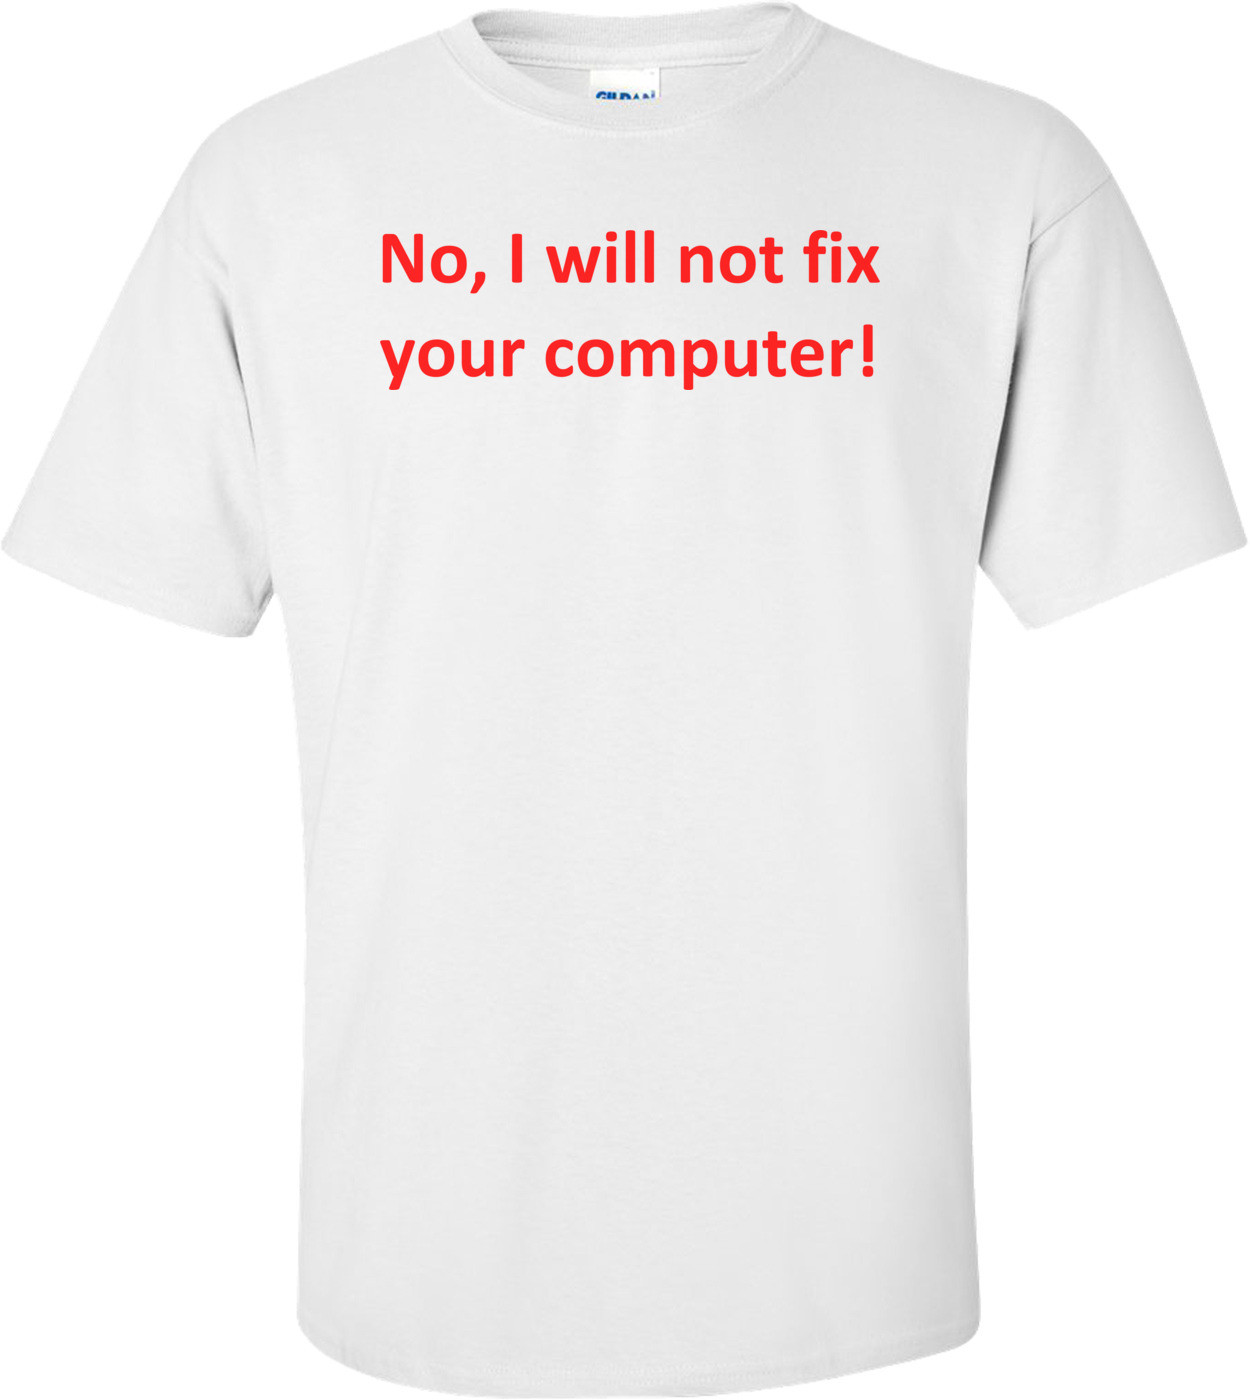 No, I will not fix your computer! Shirt